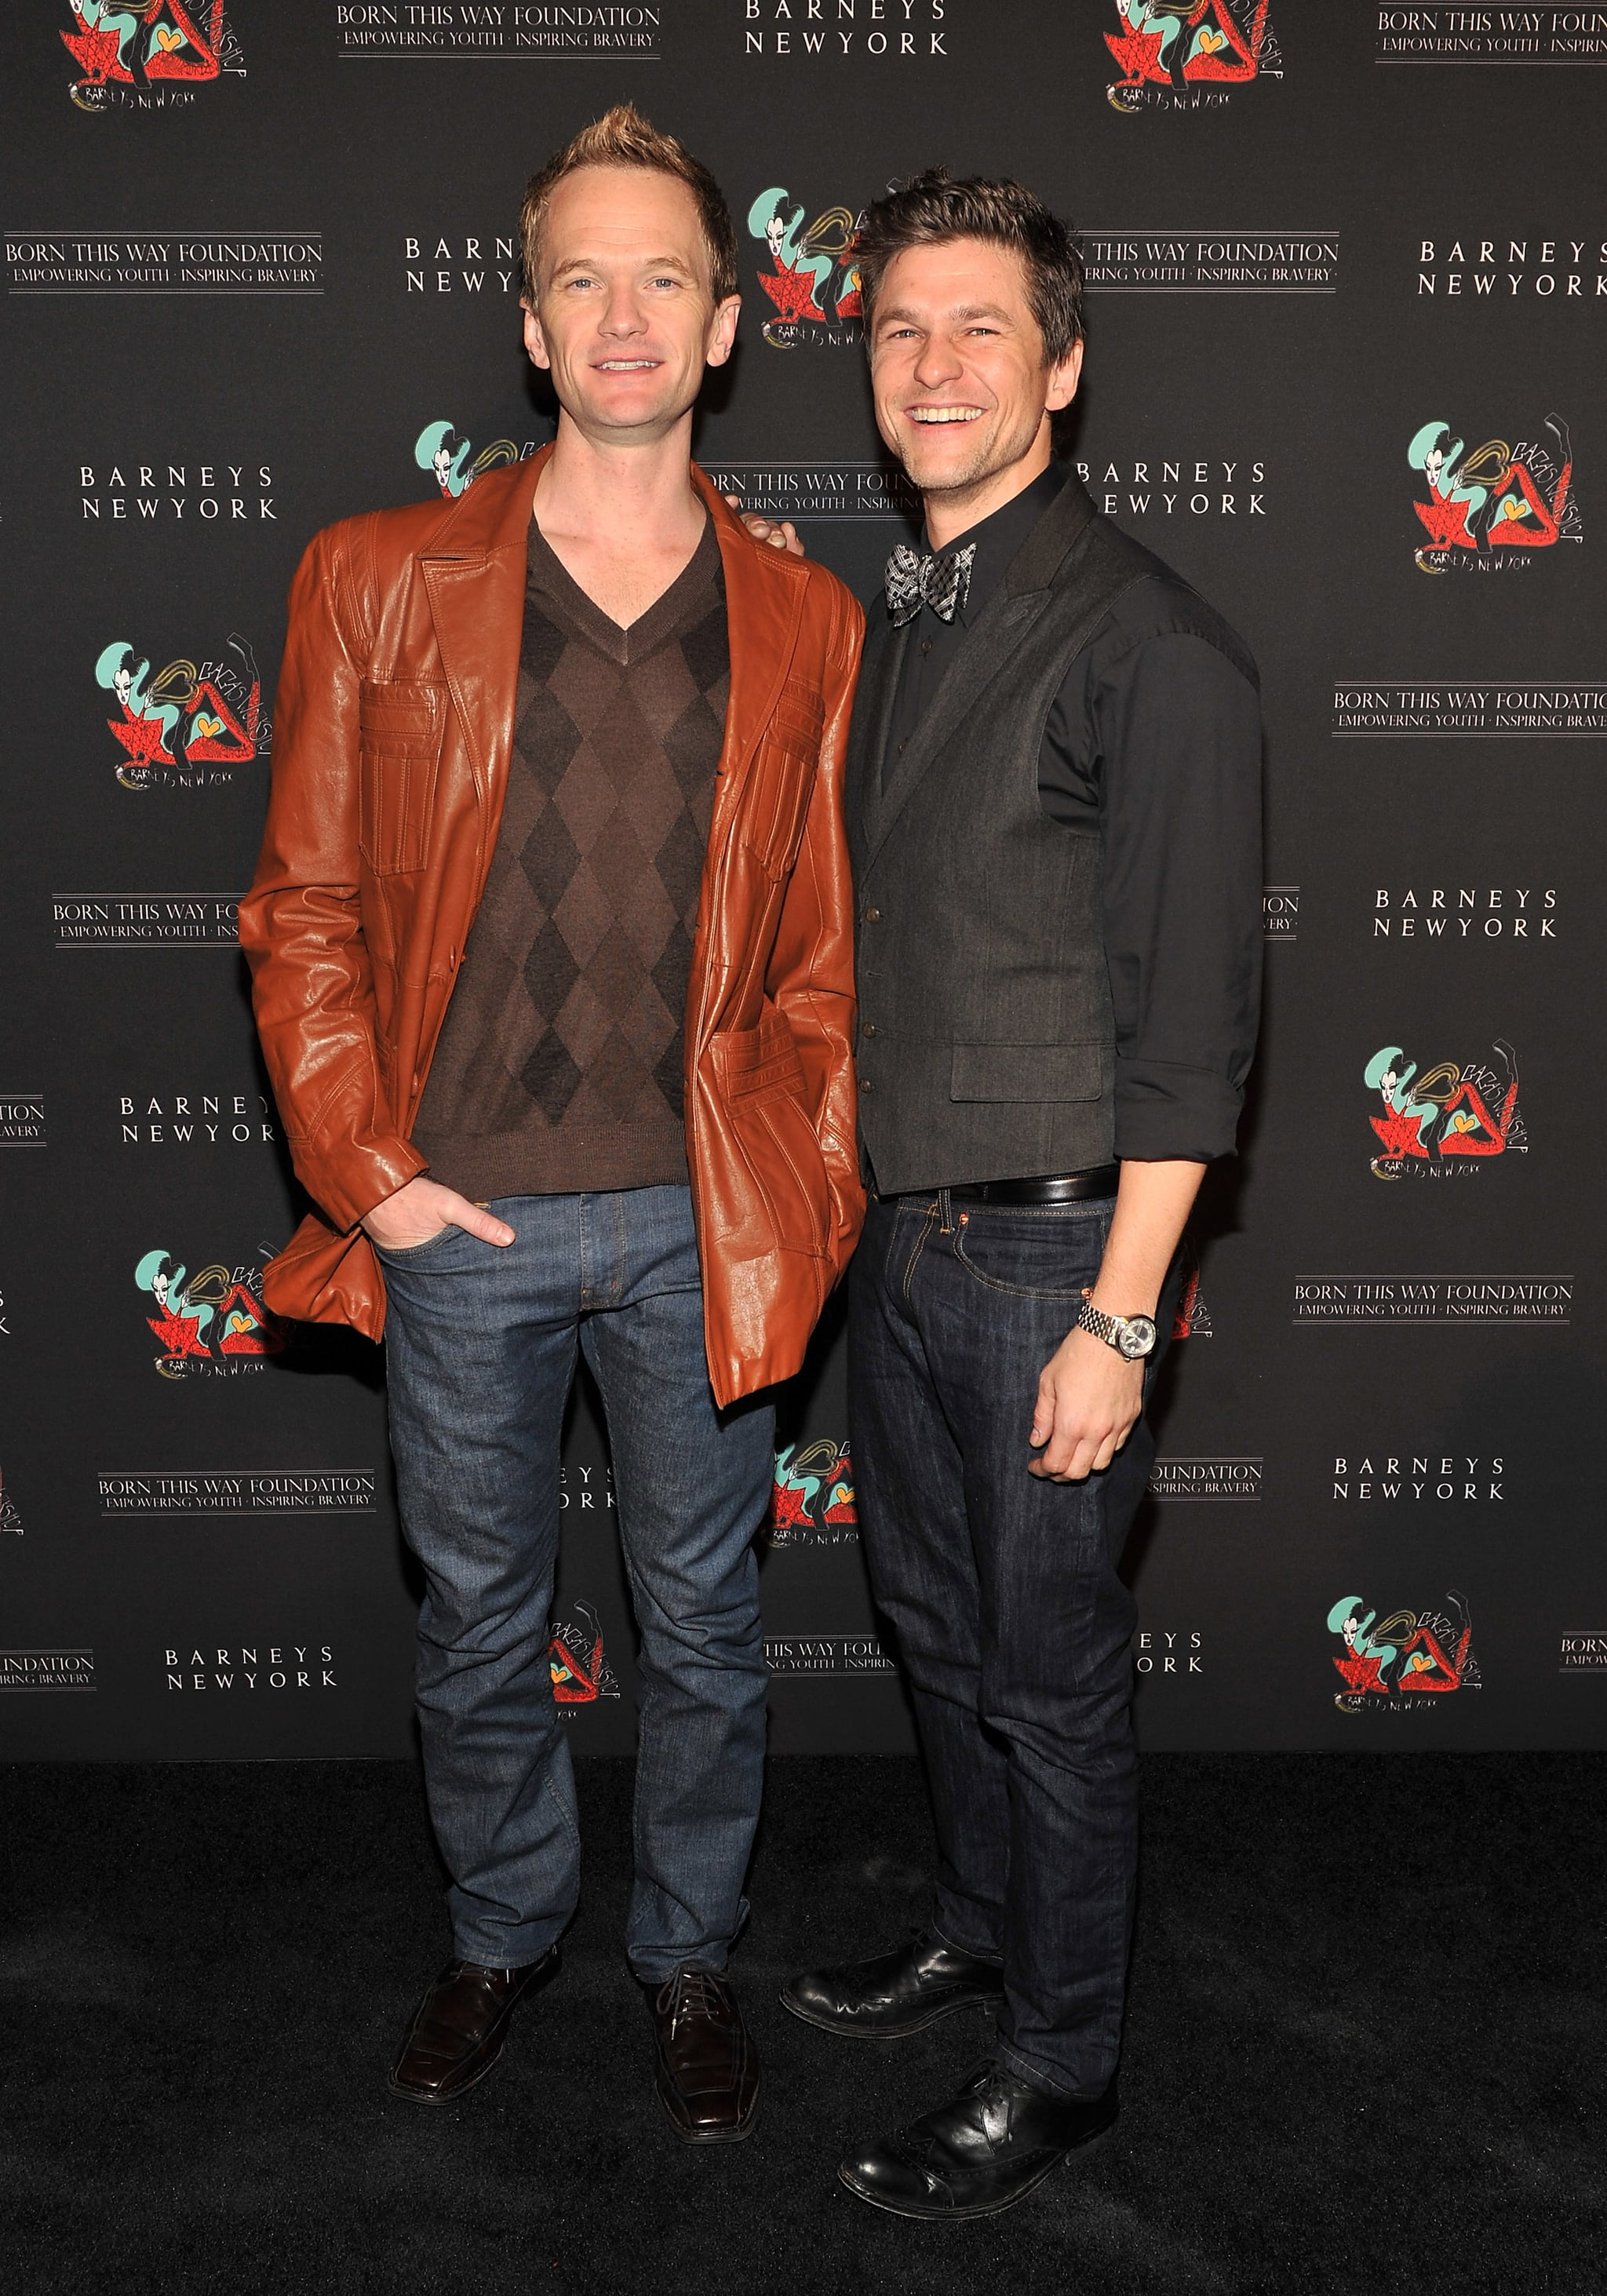 David Burtka and Neil Patrick Harris went together to Lady Gaga's party at Barneys.